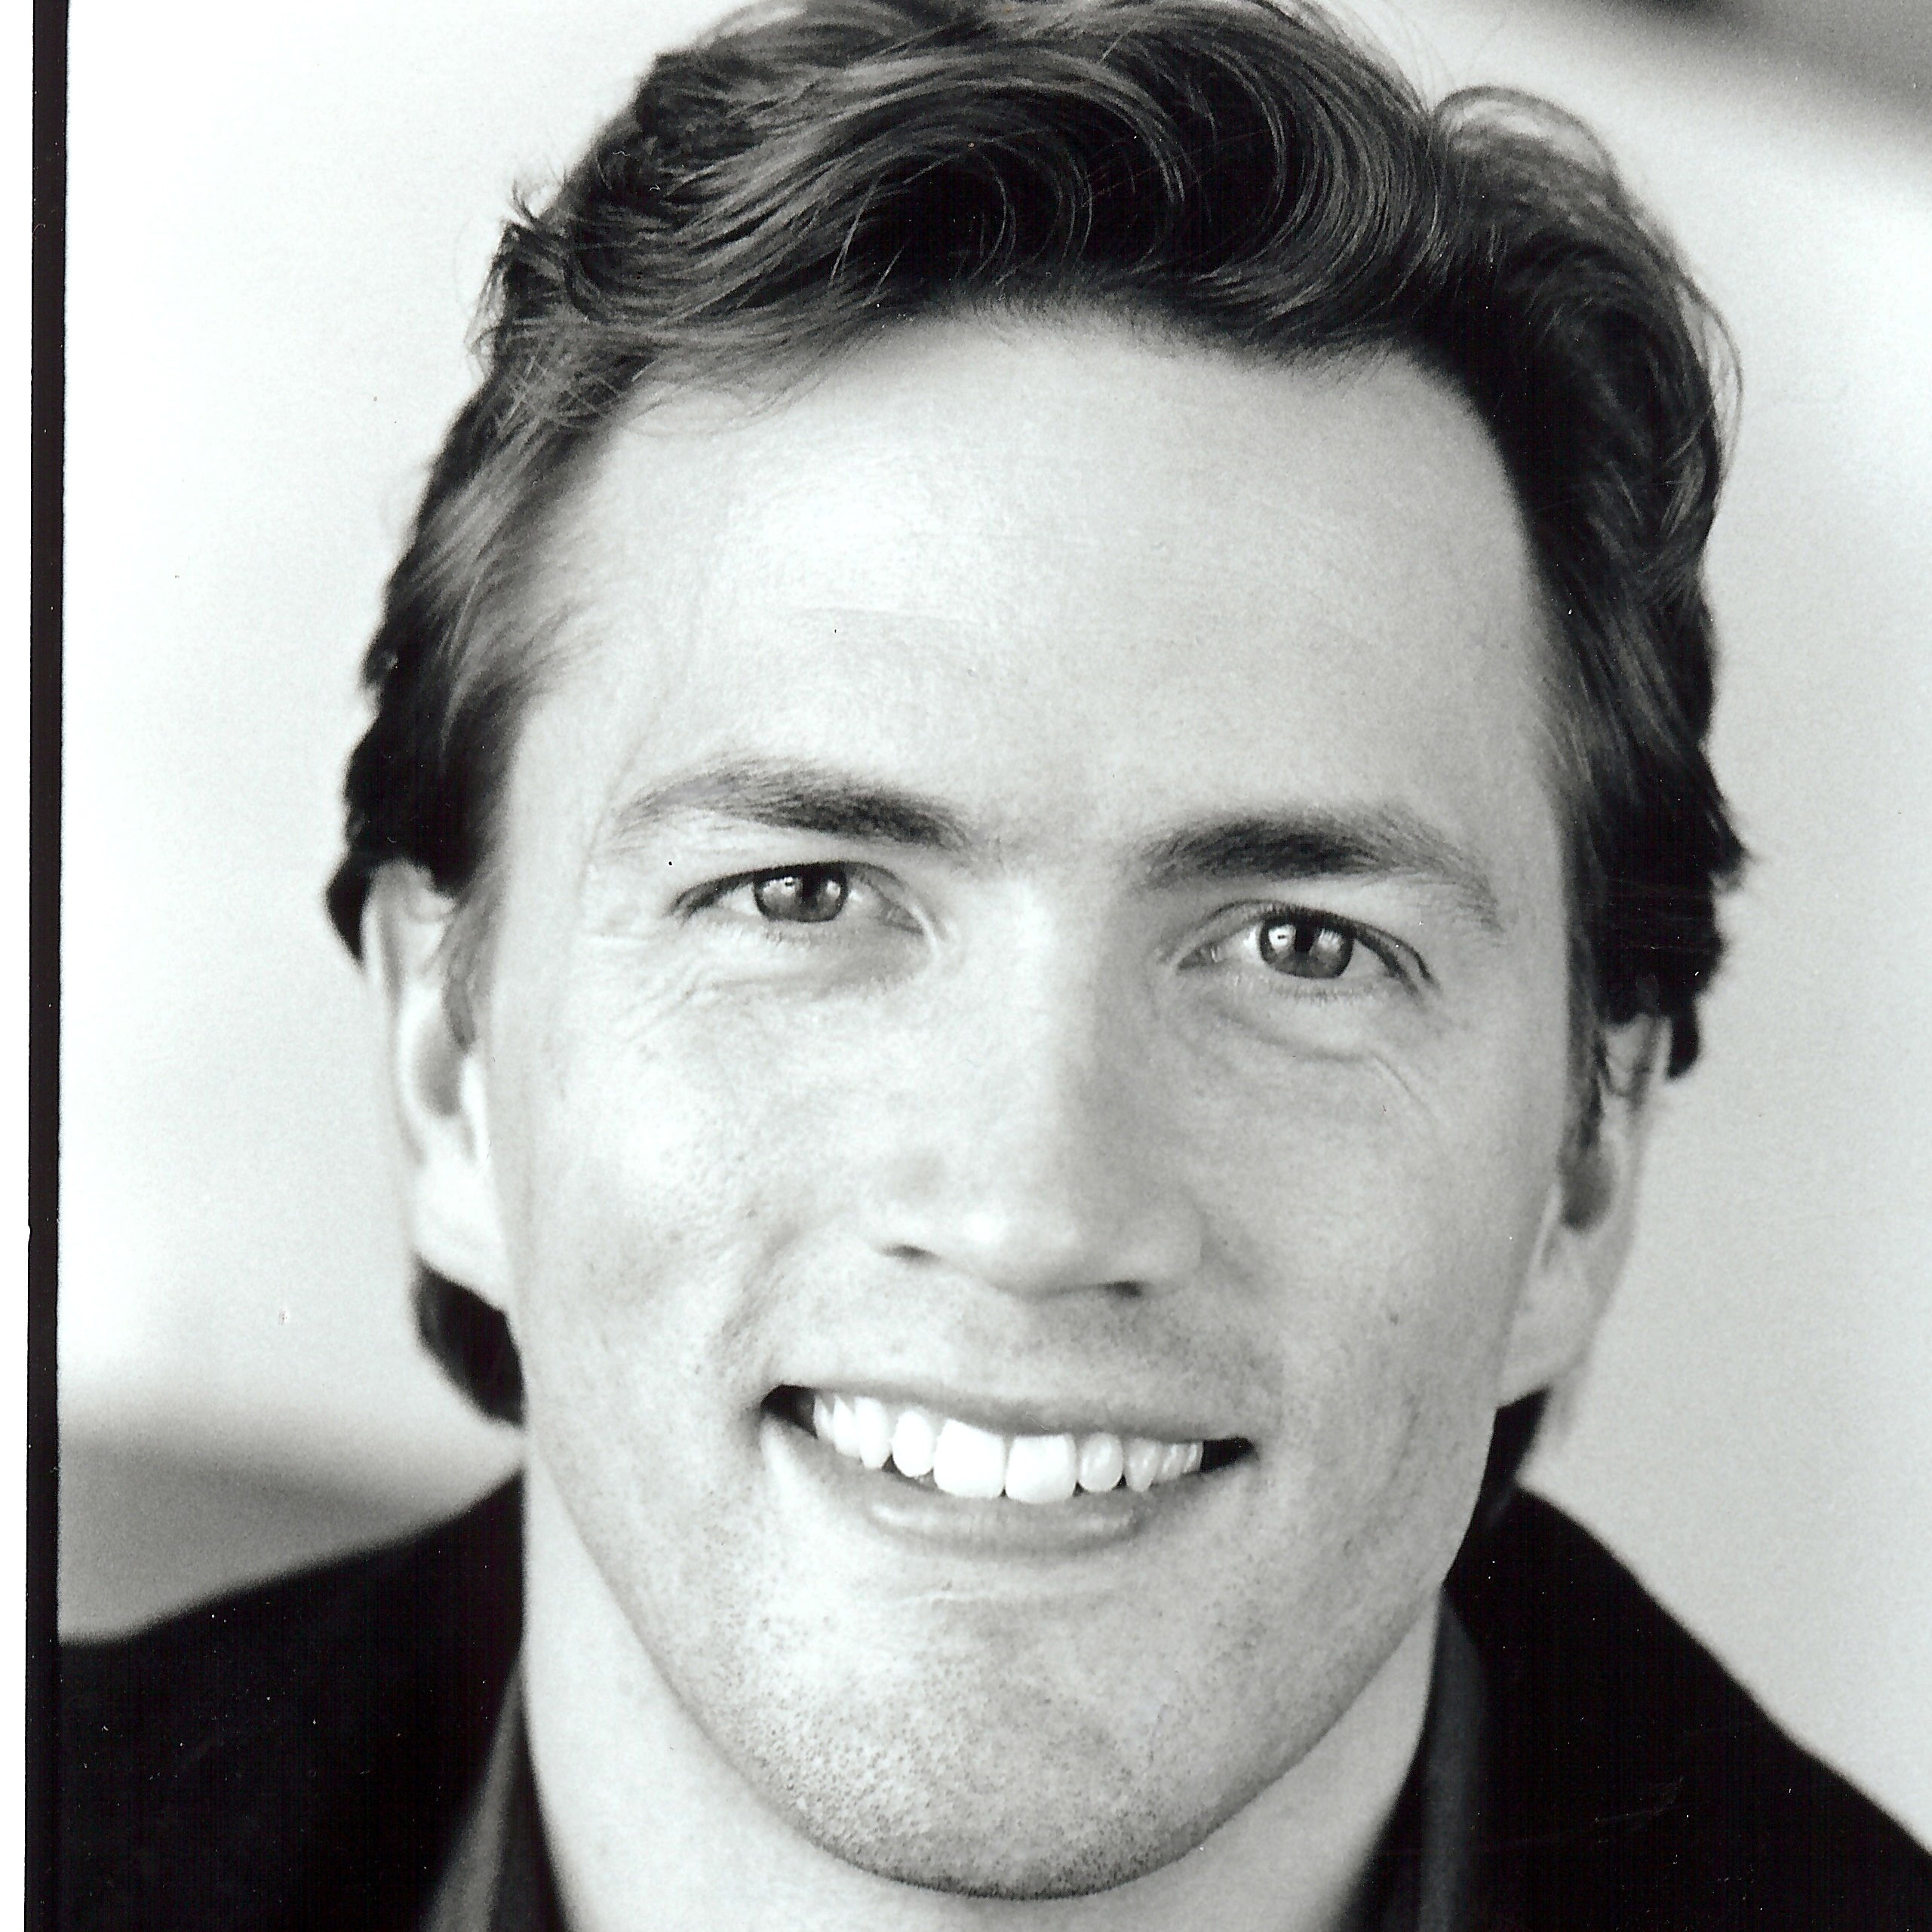 andrew shue speaker exchange agency